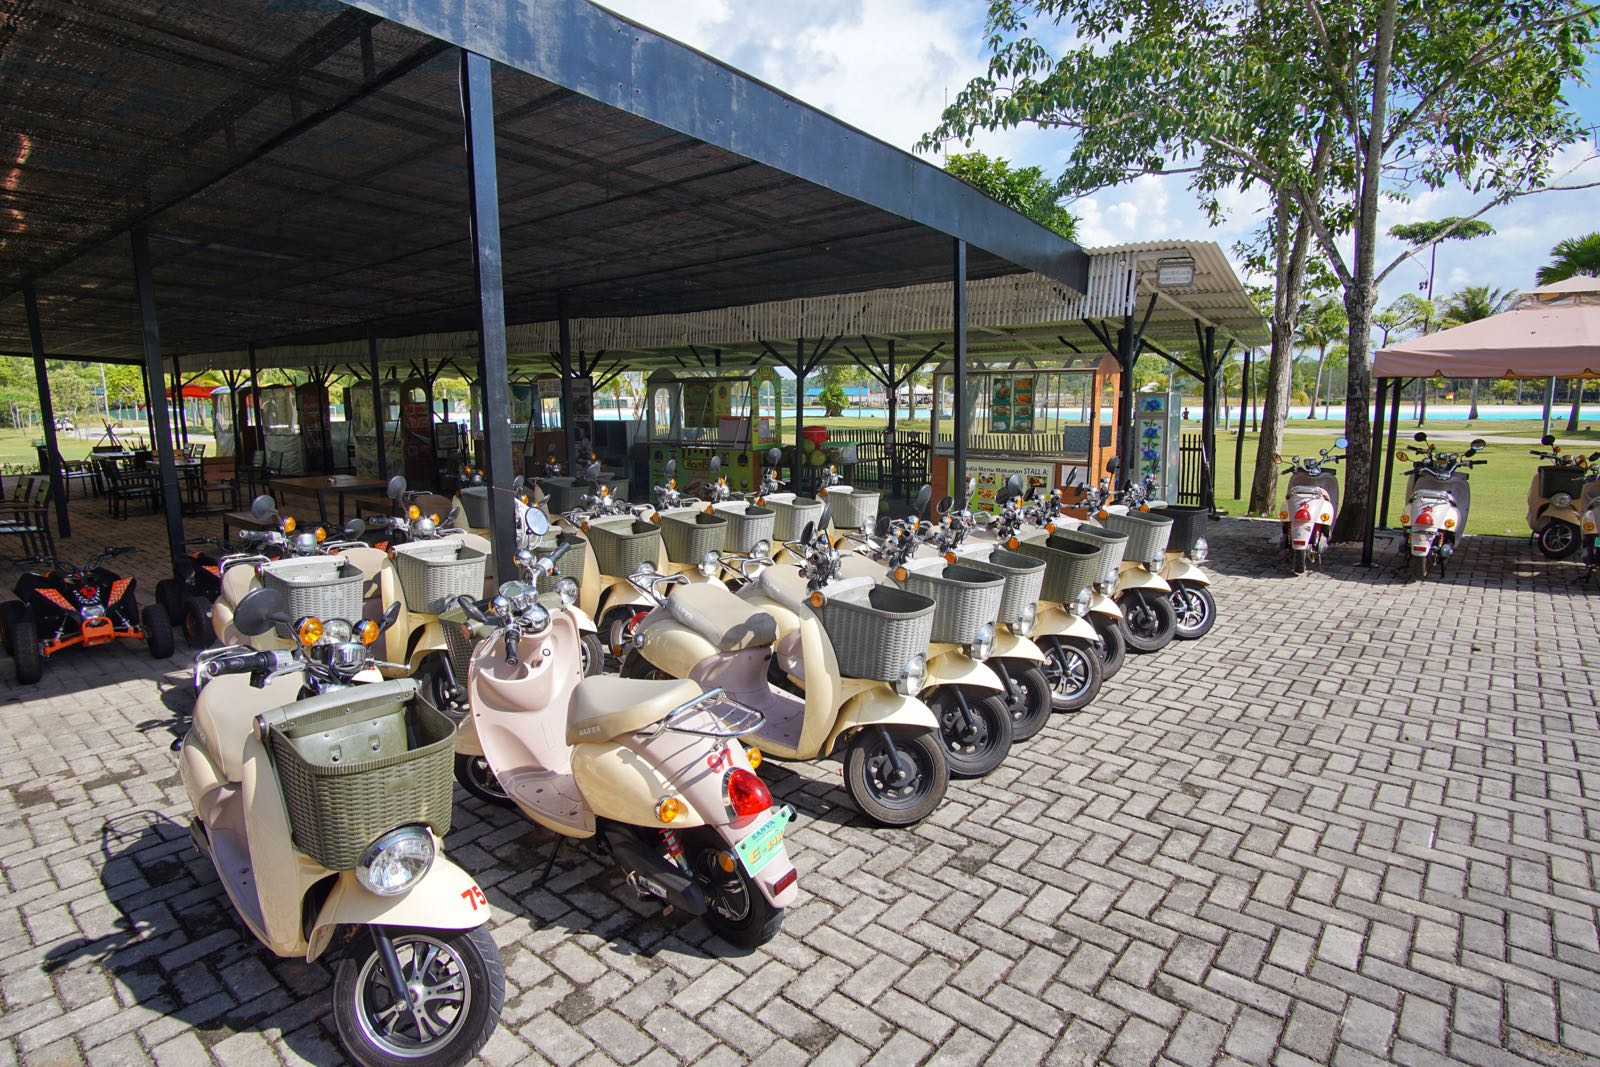 Sewa E Scooter Di Treasure Bay